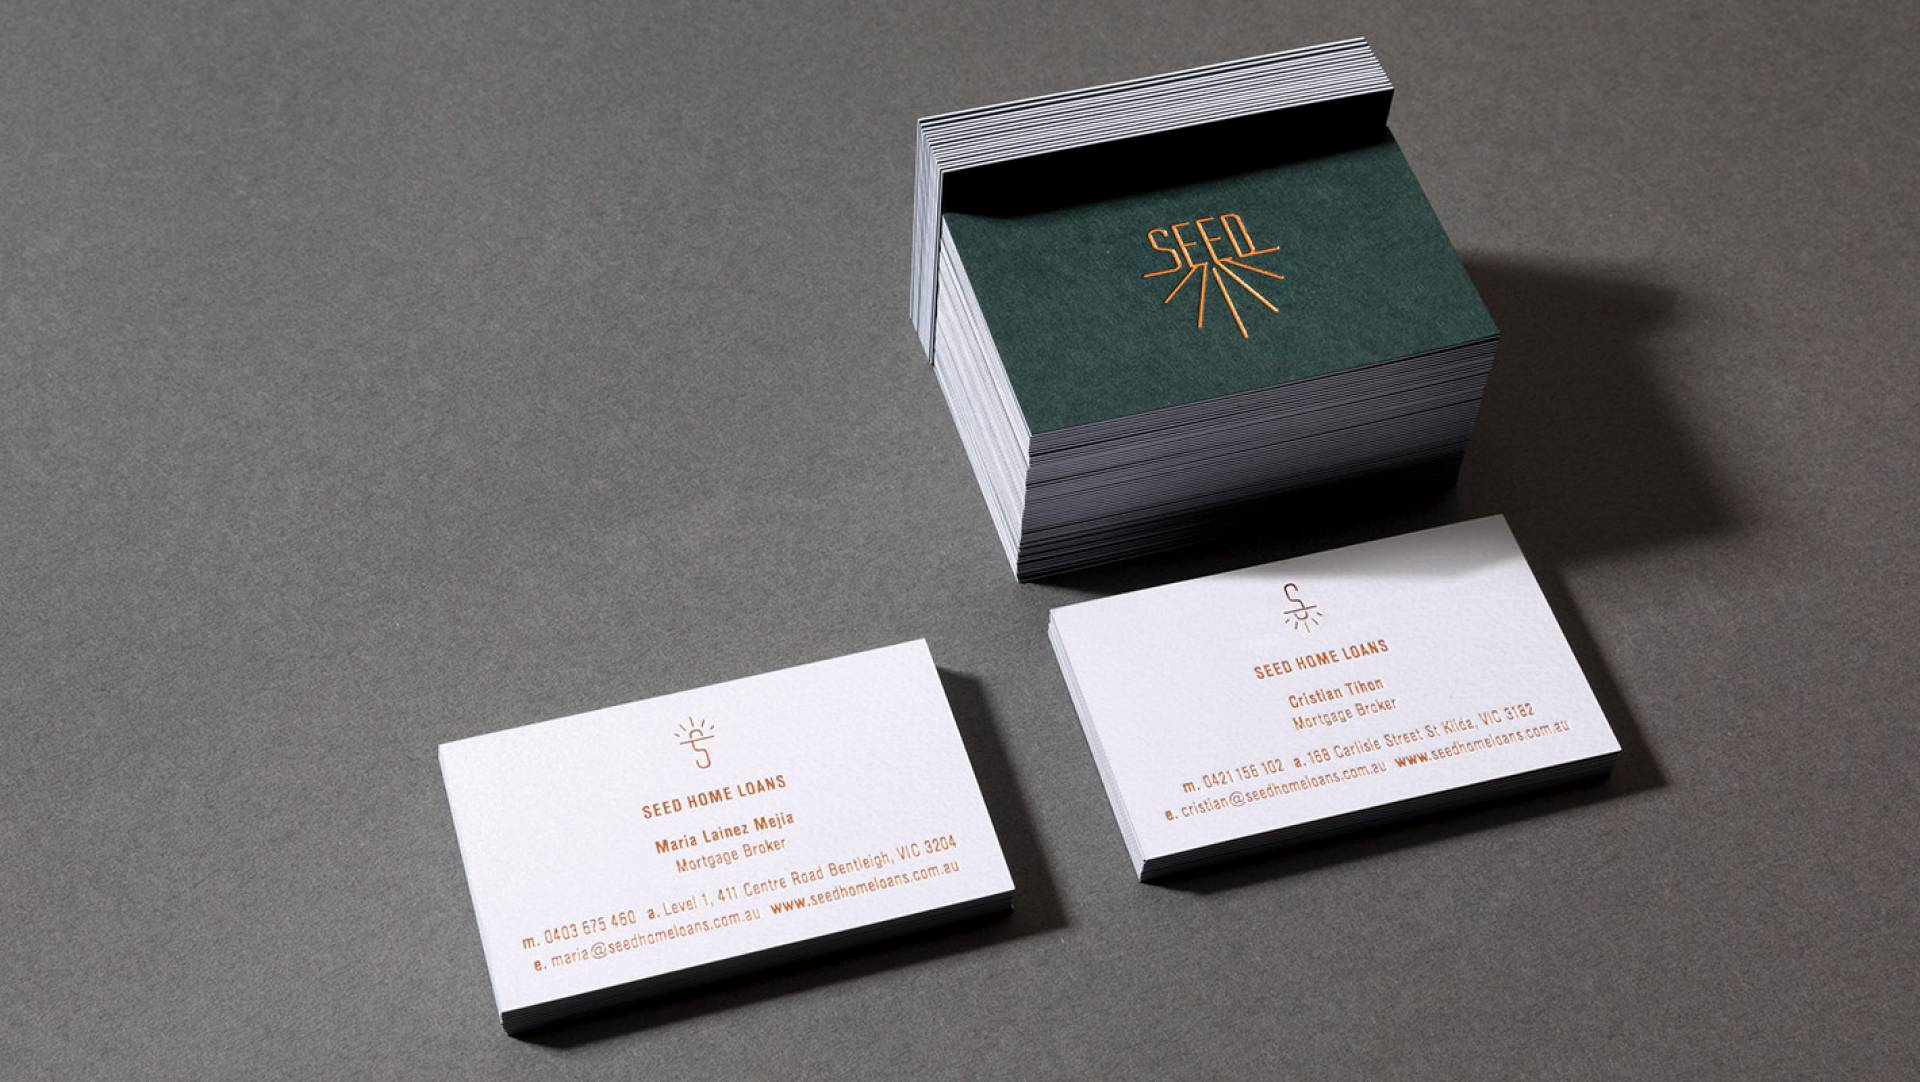 Visual Identity Design Melbourne-Business Card Design Melbourne